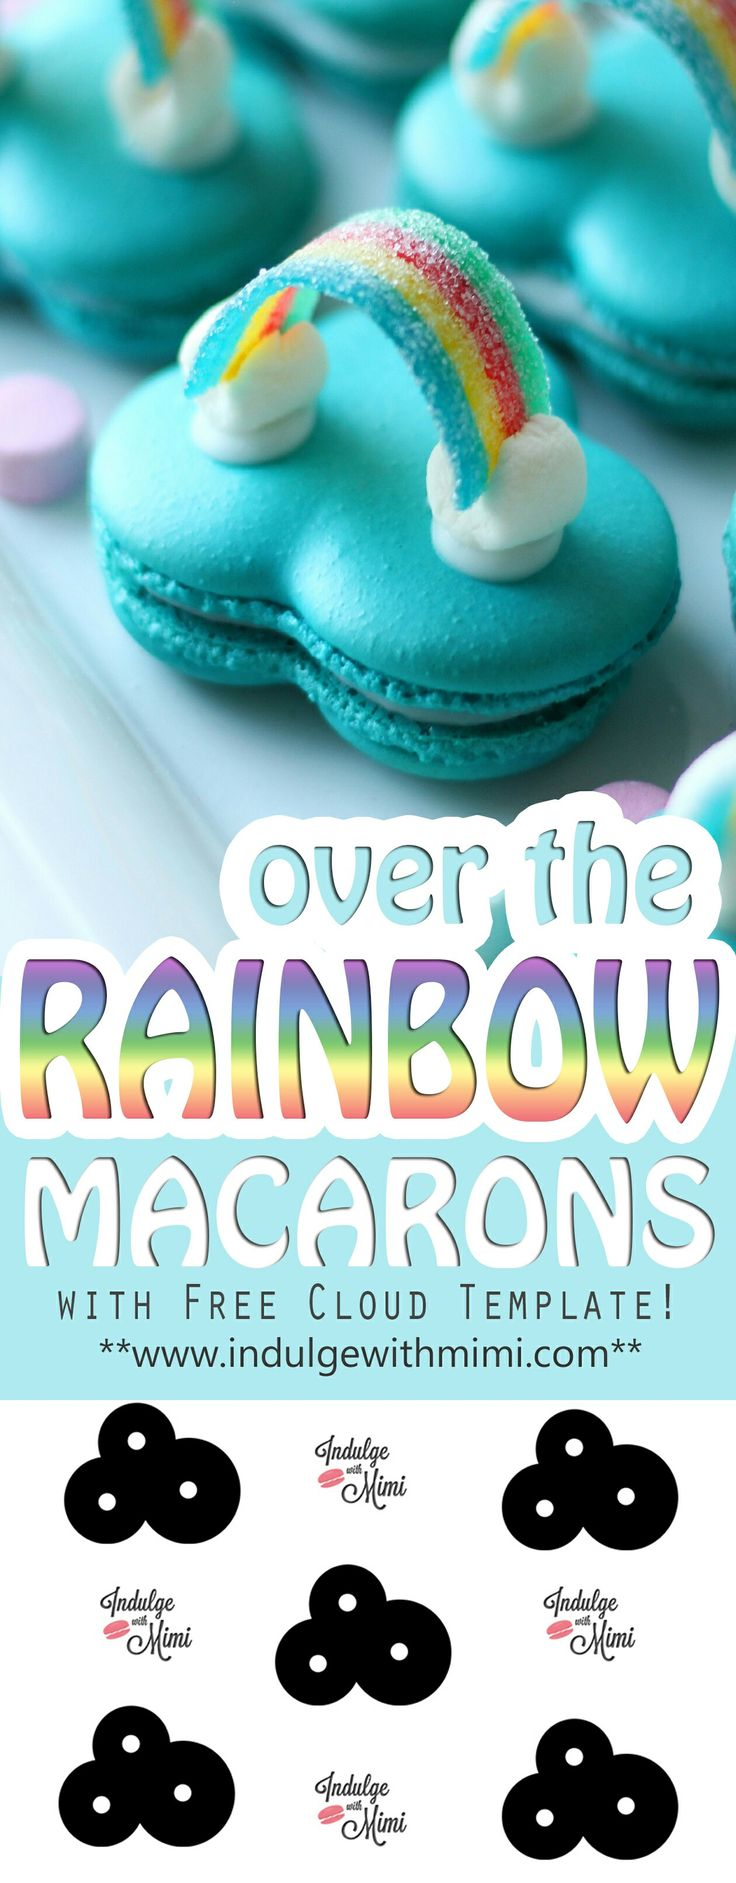 Over the Rainbow Macaron Tutorial with free cloud template and video!